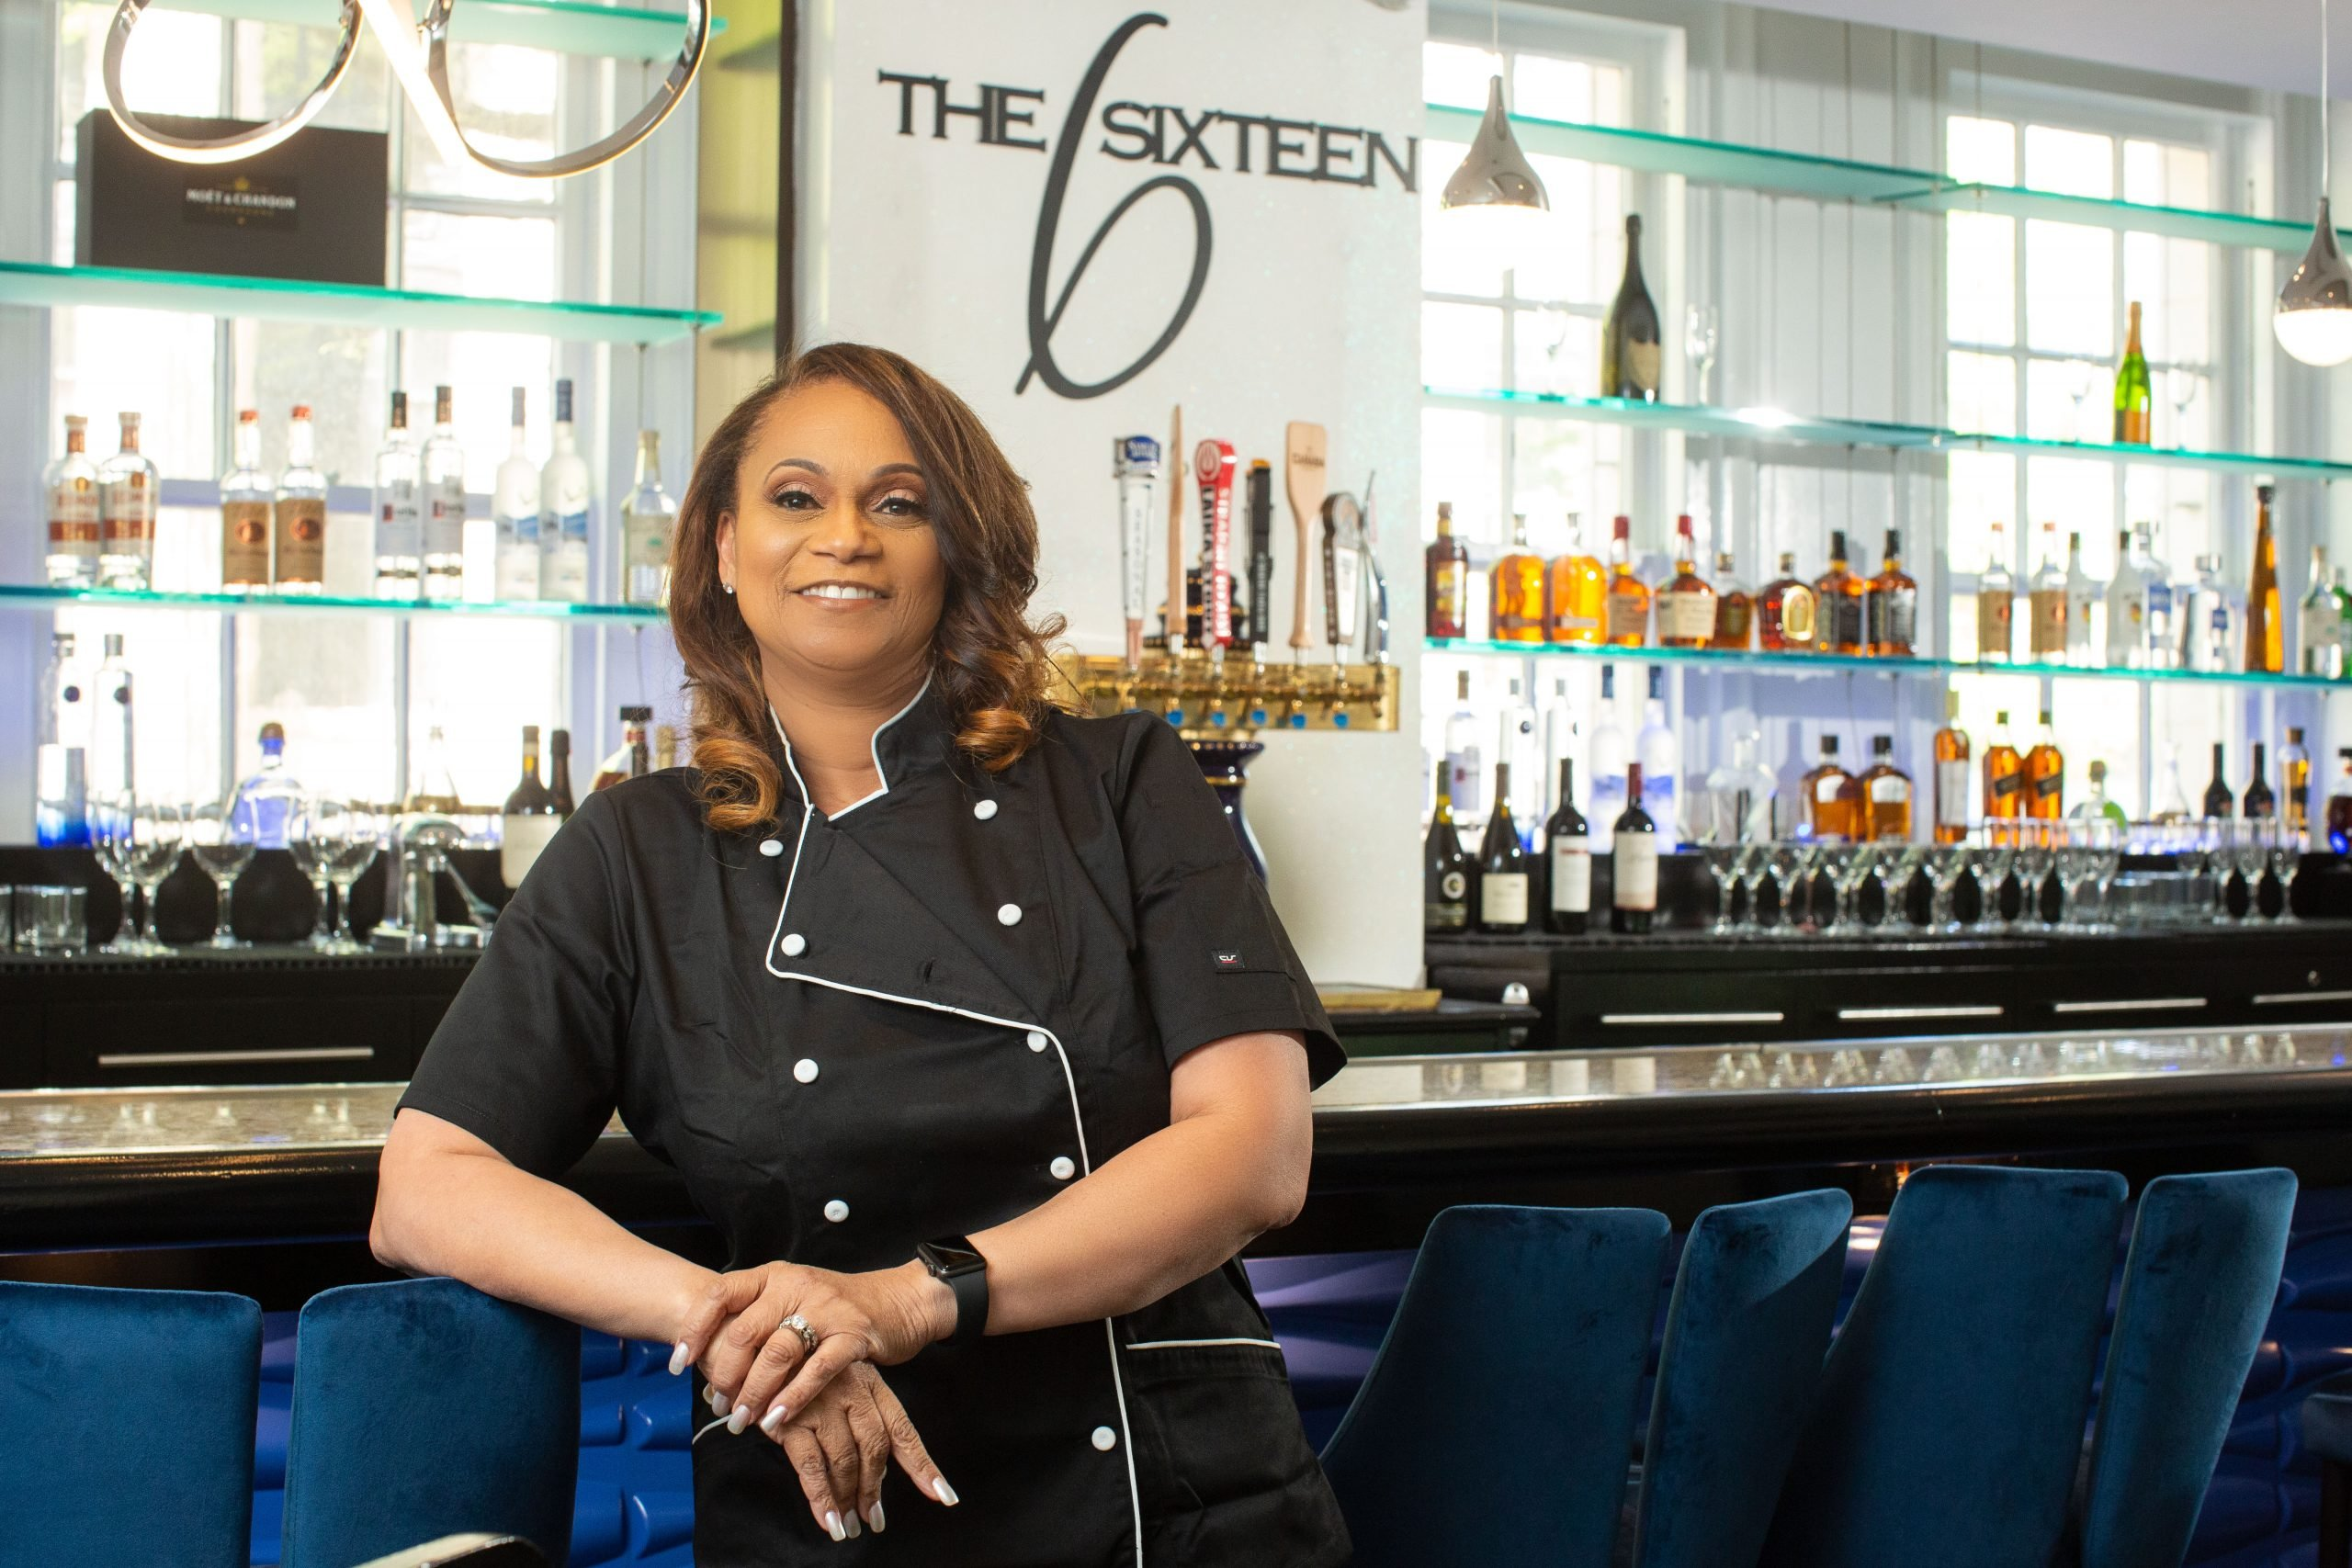 The 6 Sixteen is just what Birmingham needs